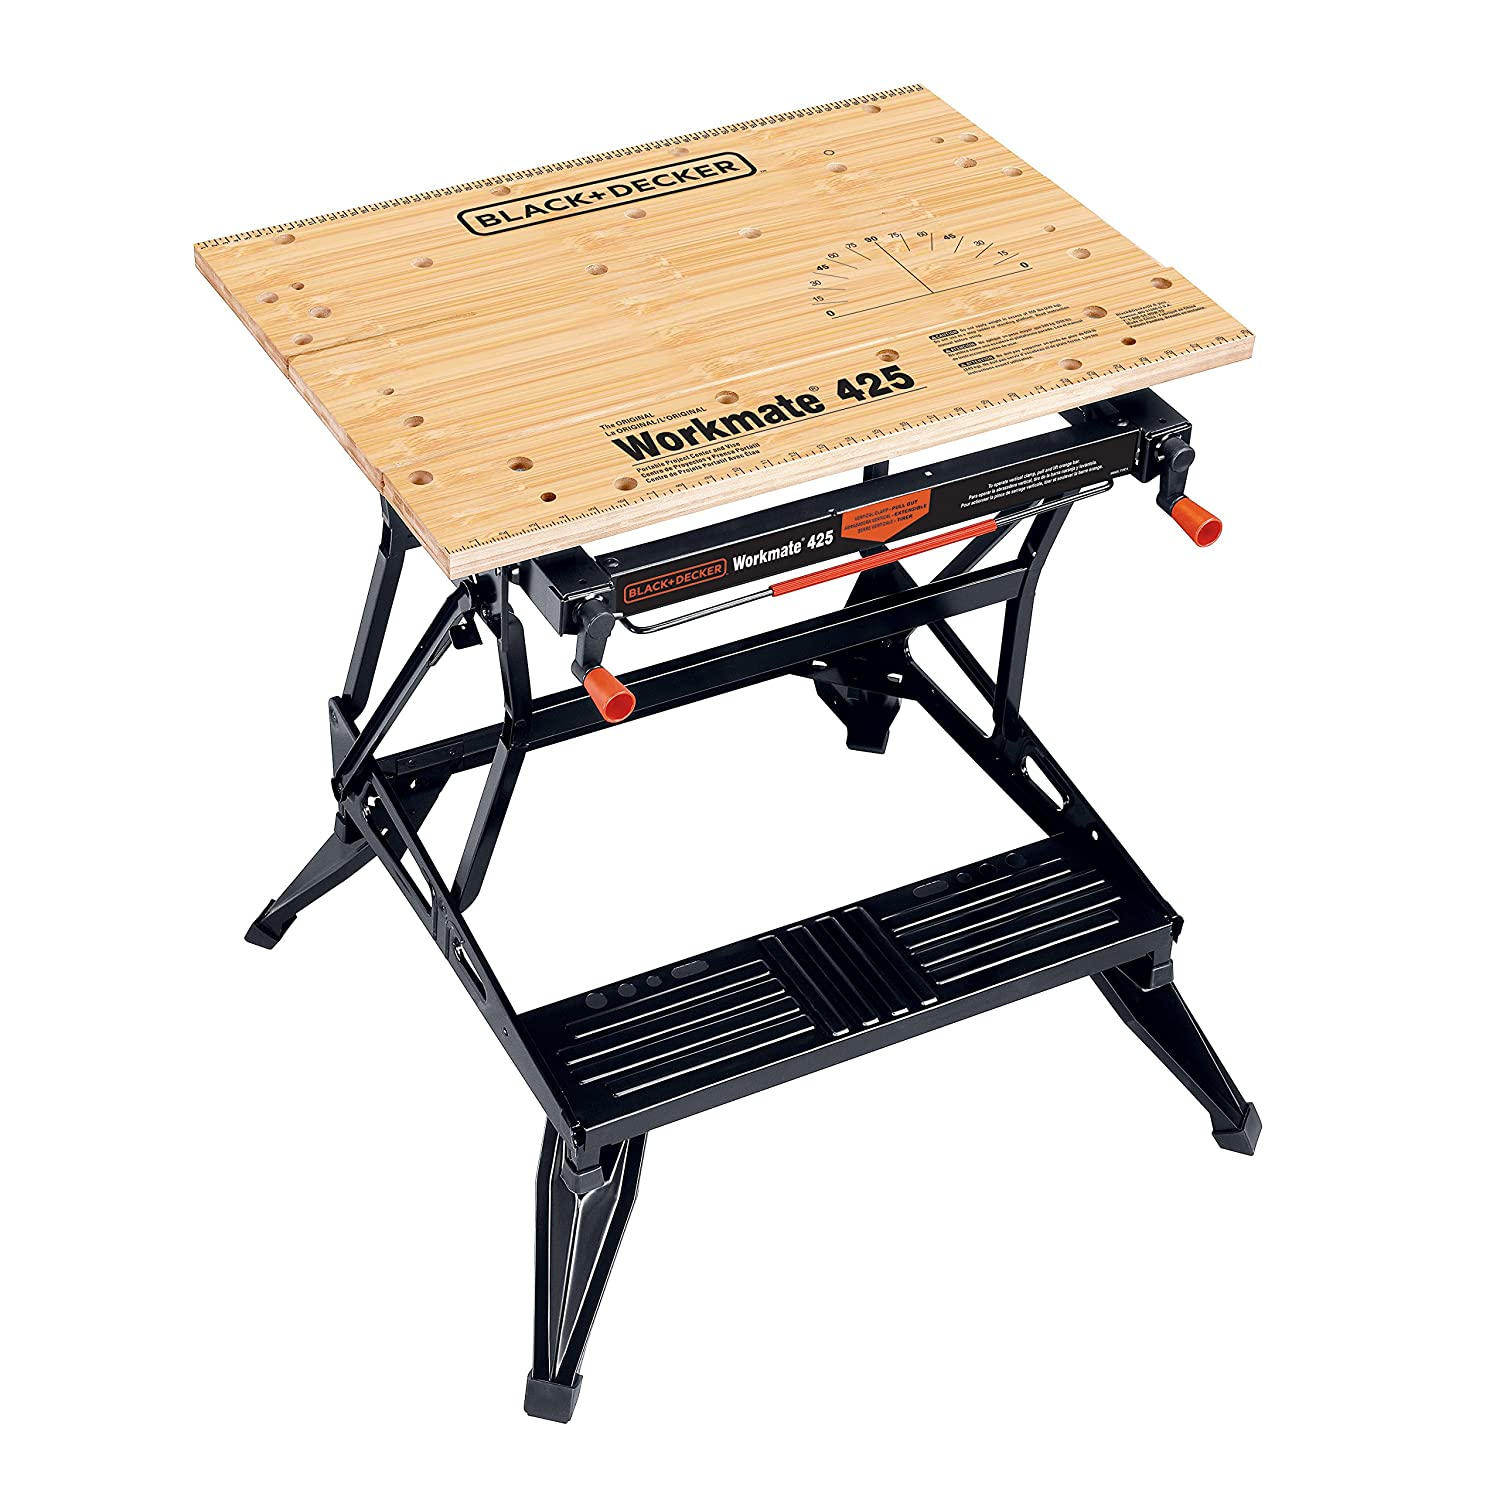 Find BLACK+DECKER WM425 Workmate